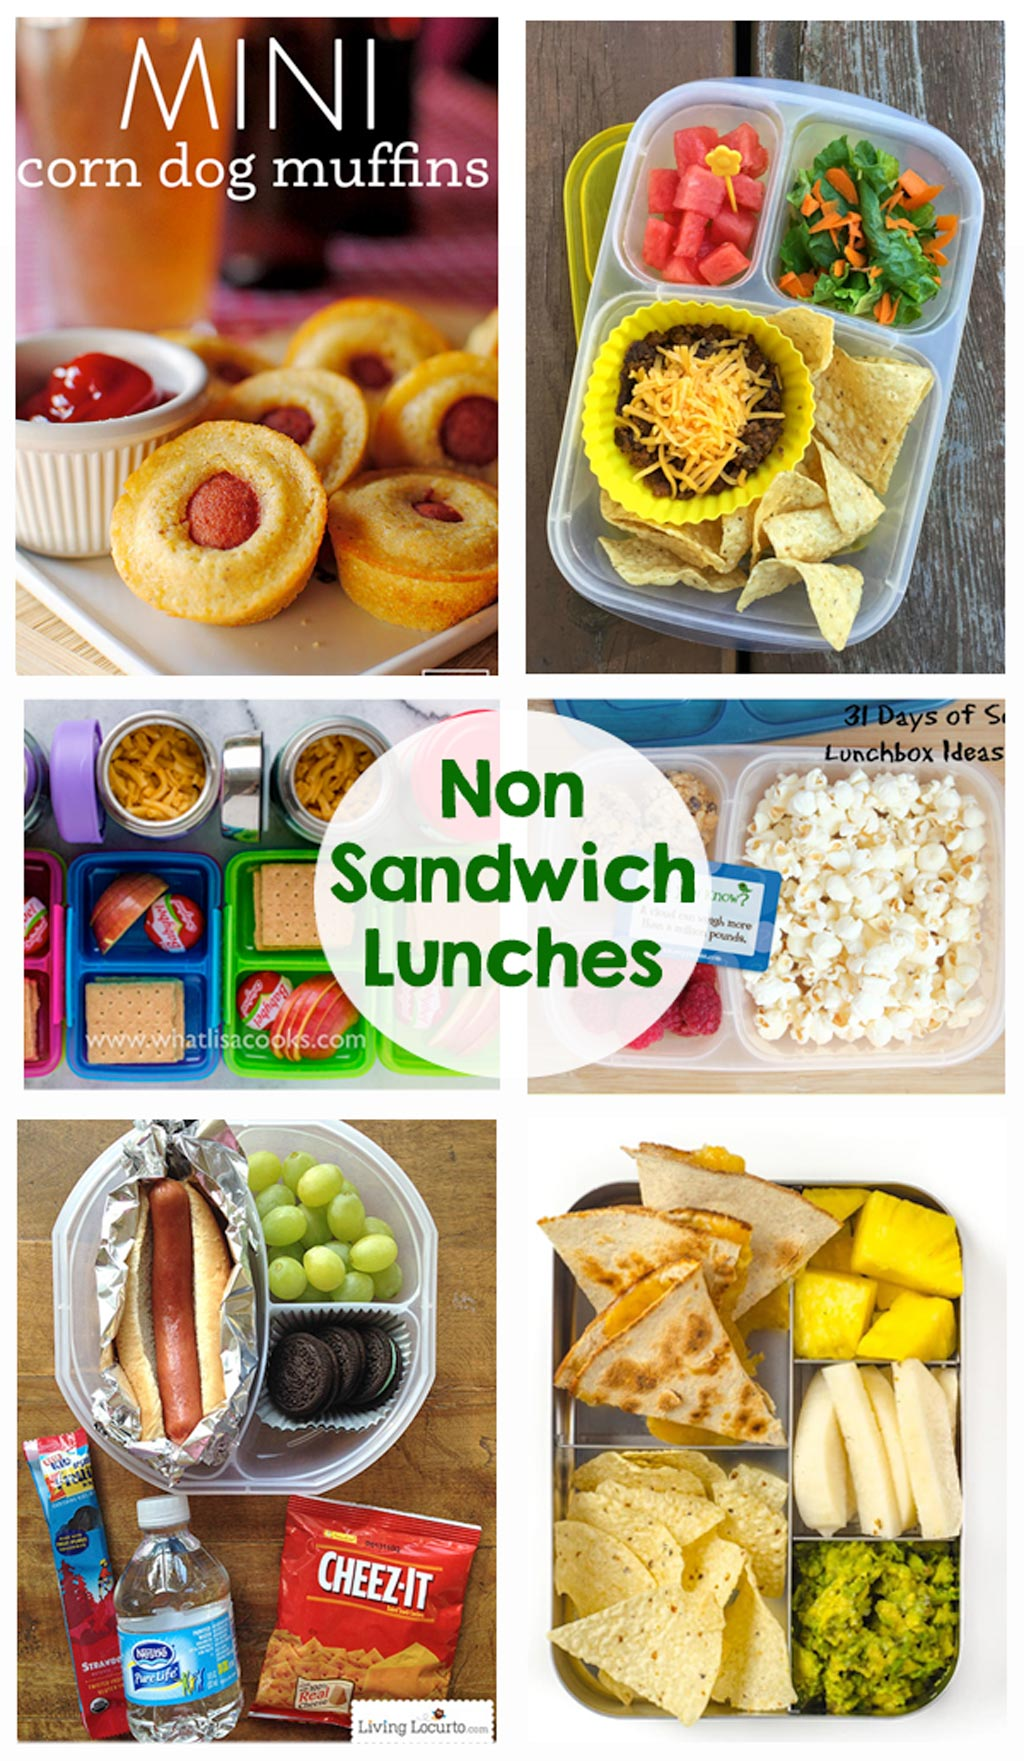 Non Sandwich Lunch Ideas - So many great school lunch ideas in this post! Hot dogs, quesadillas, mini corn dogs, mac and cheese, taco salad... yum!